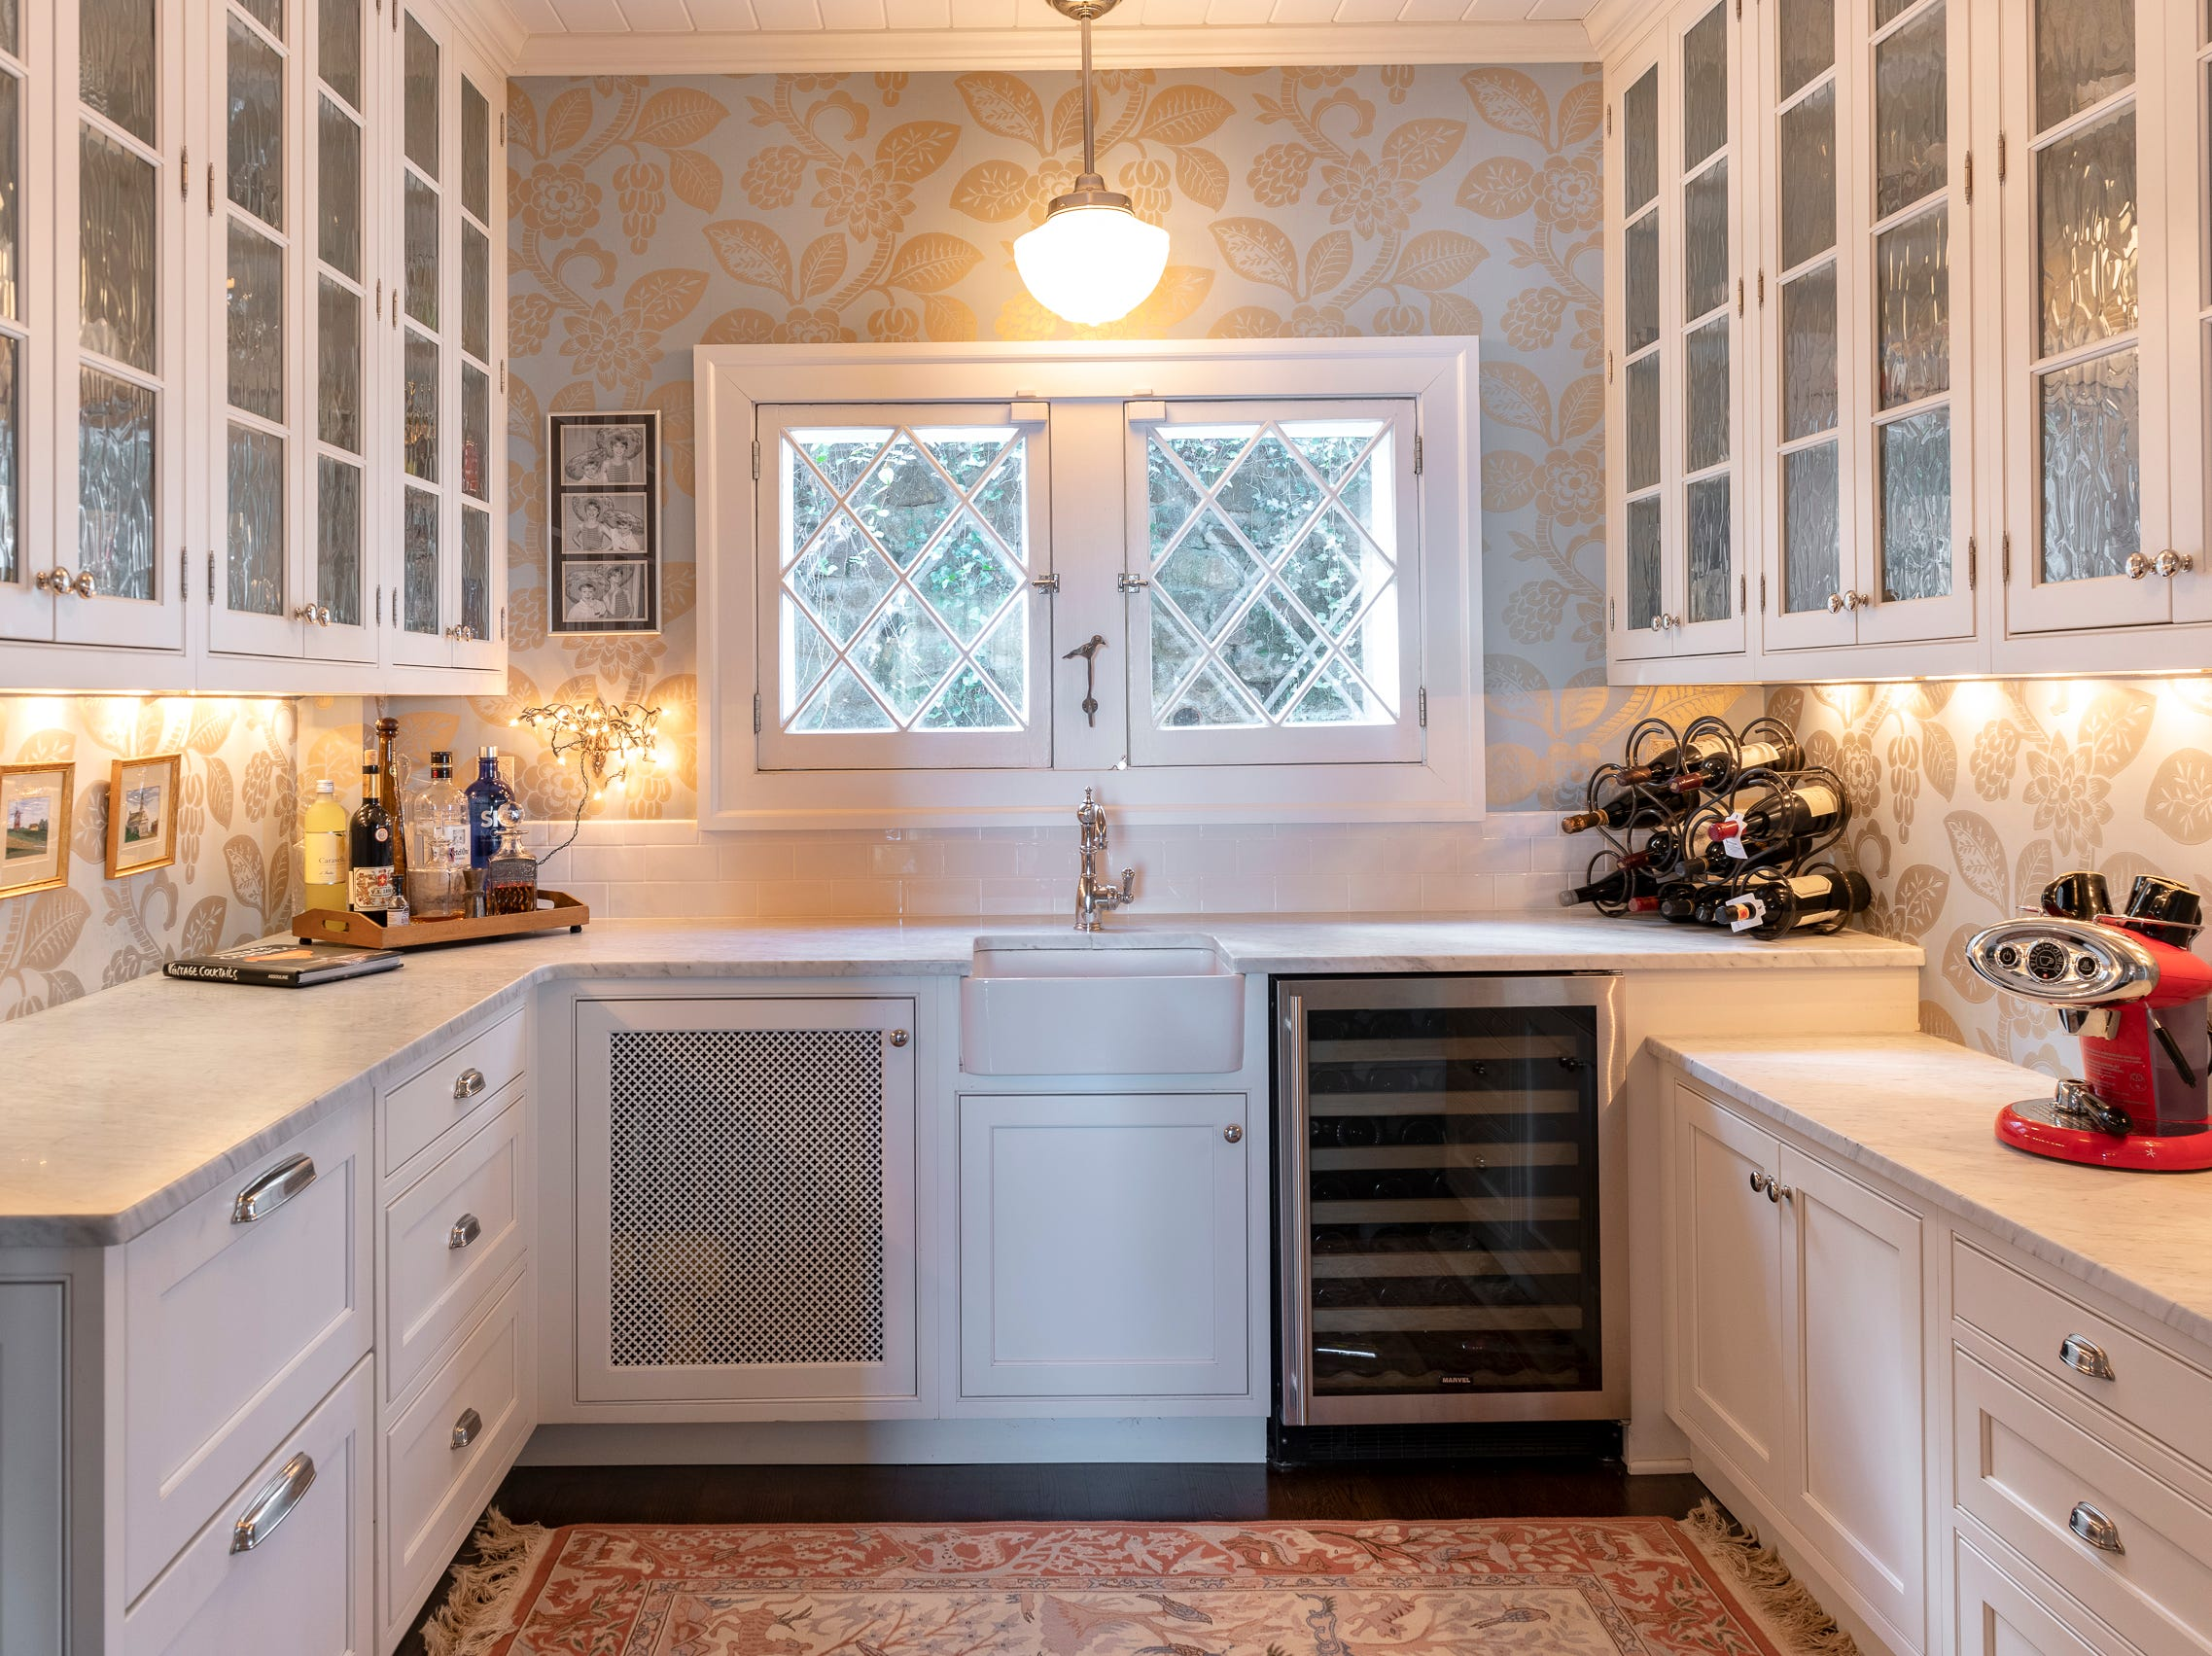 The butlers pantry. The current owners created an addition that includes a gourmet eat-in kitchen.